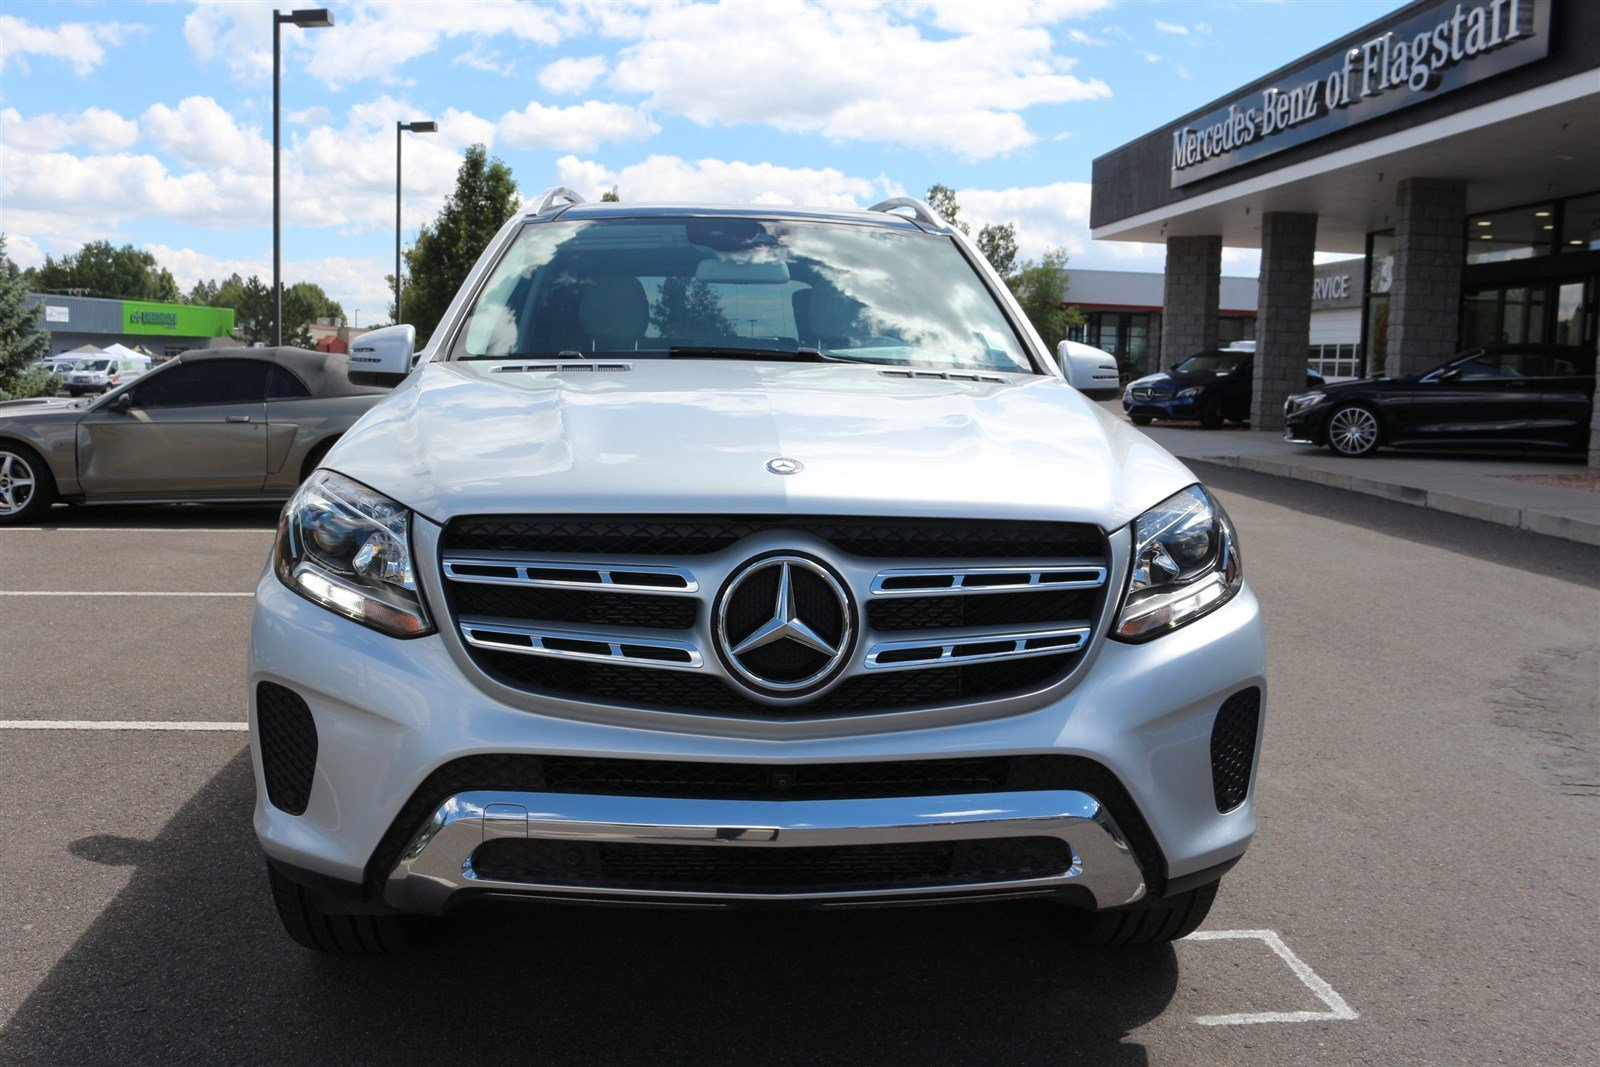 New 2017 mercedes benz gls gls450 suv in flagstaff mh1433 for 2017 mercedes benz gls450